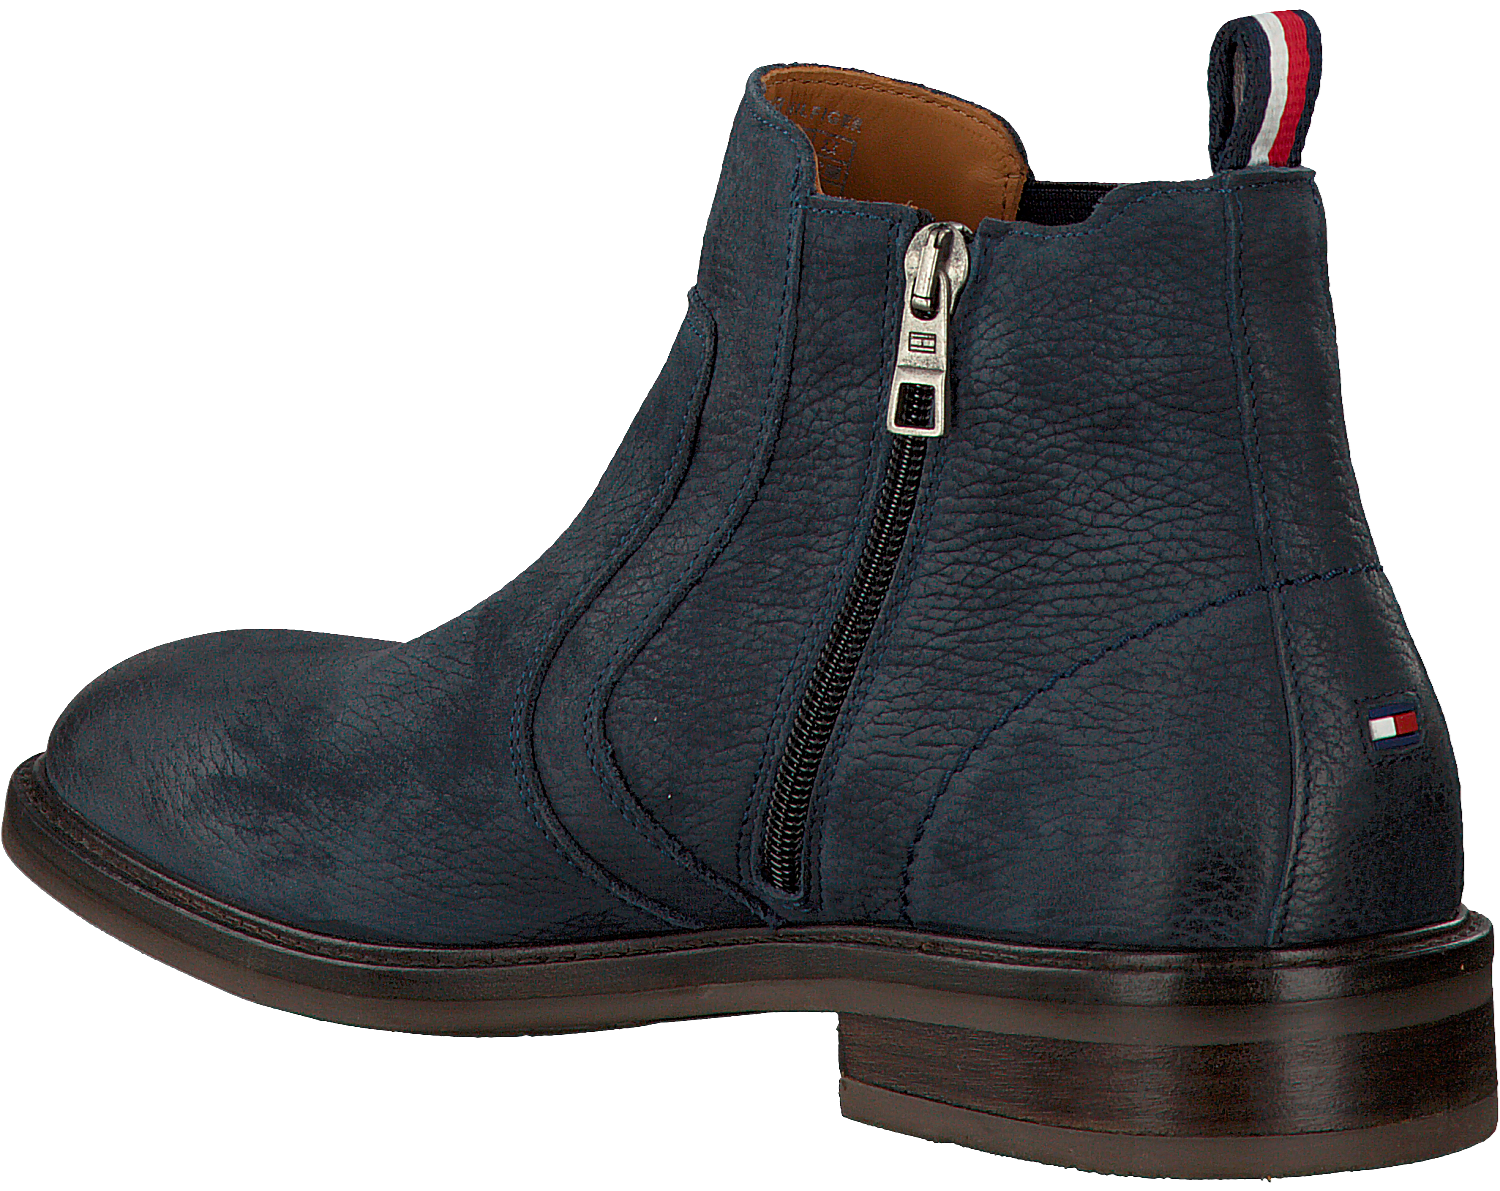 f2193a99c16782 Blaue TOMMY HILFIGER Chelsea Boots ROUNDER 2N. TOMMY HILFIGER. -50%.  Previous